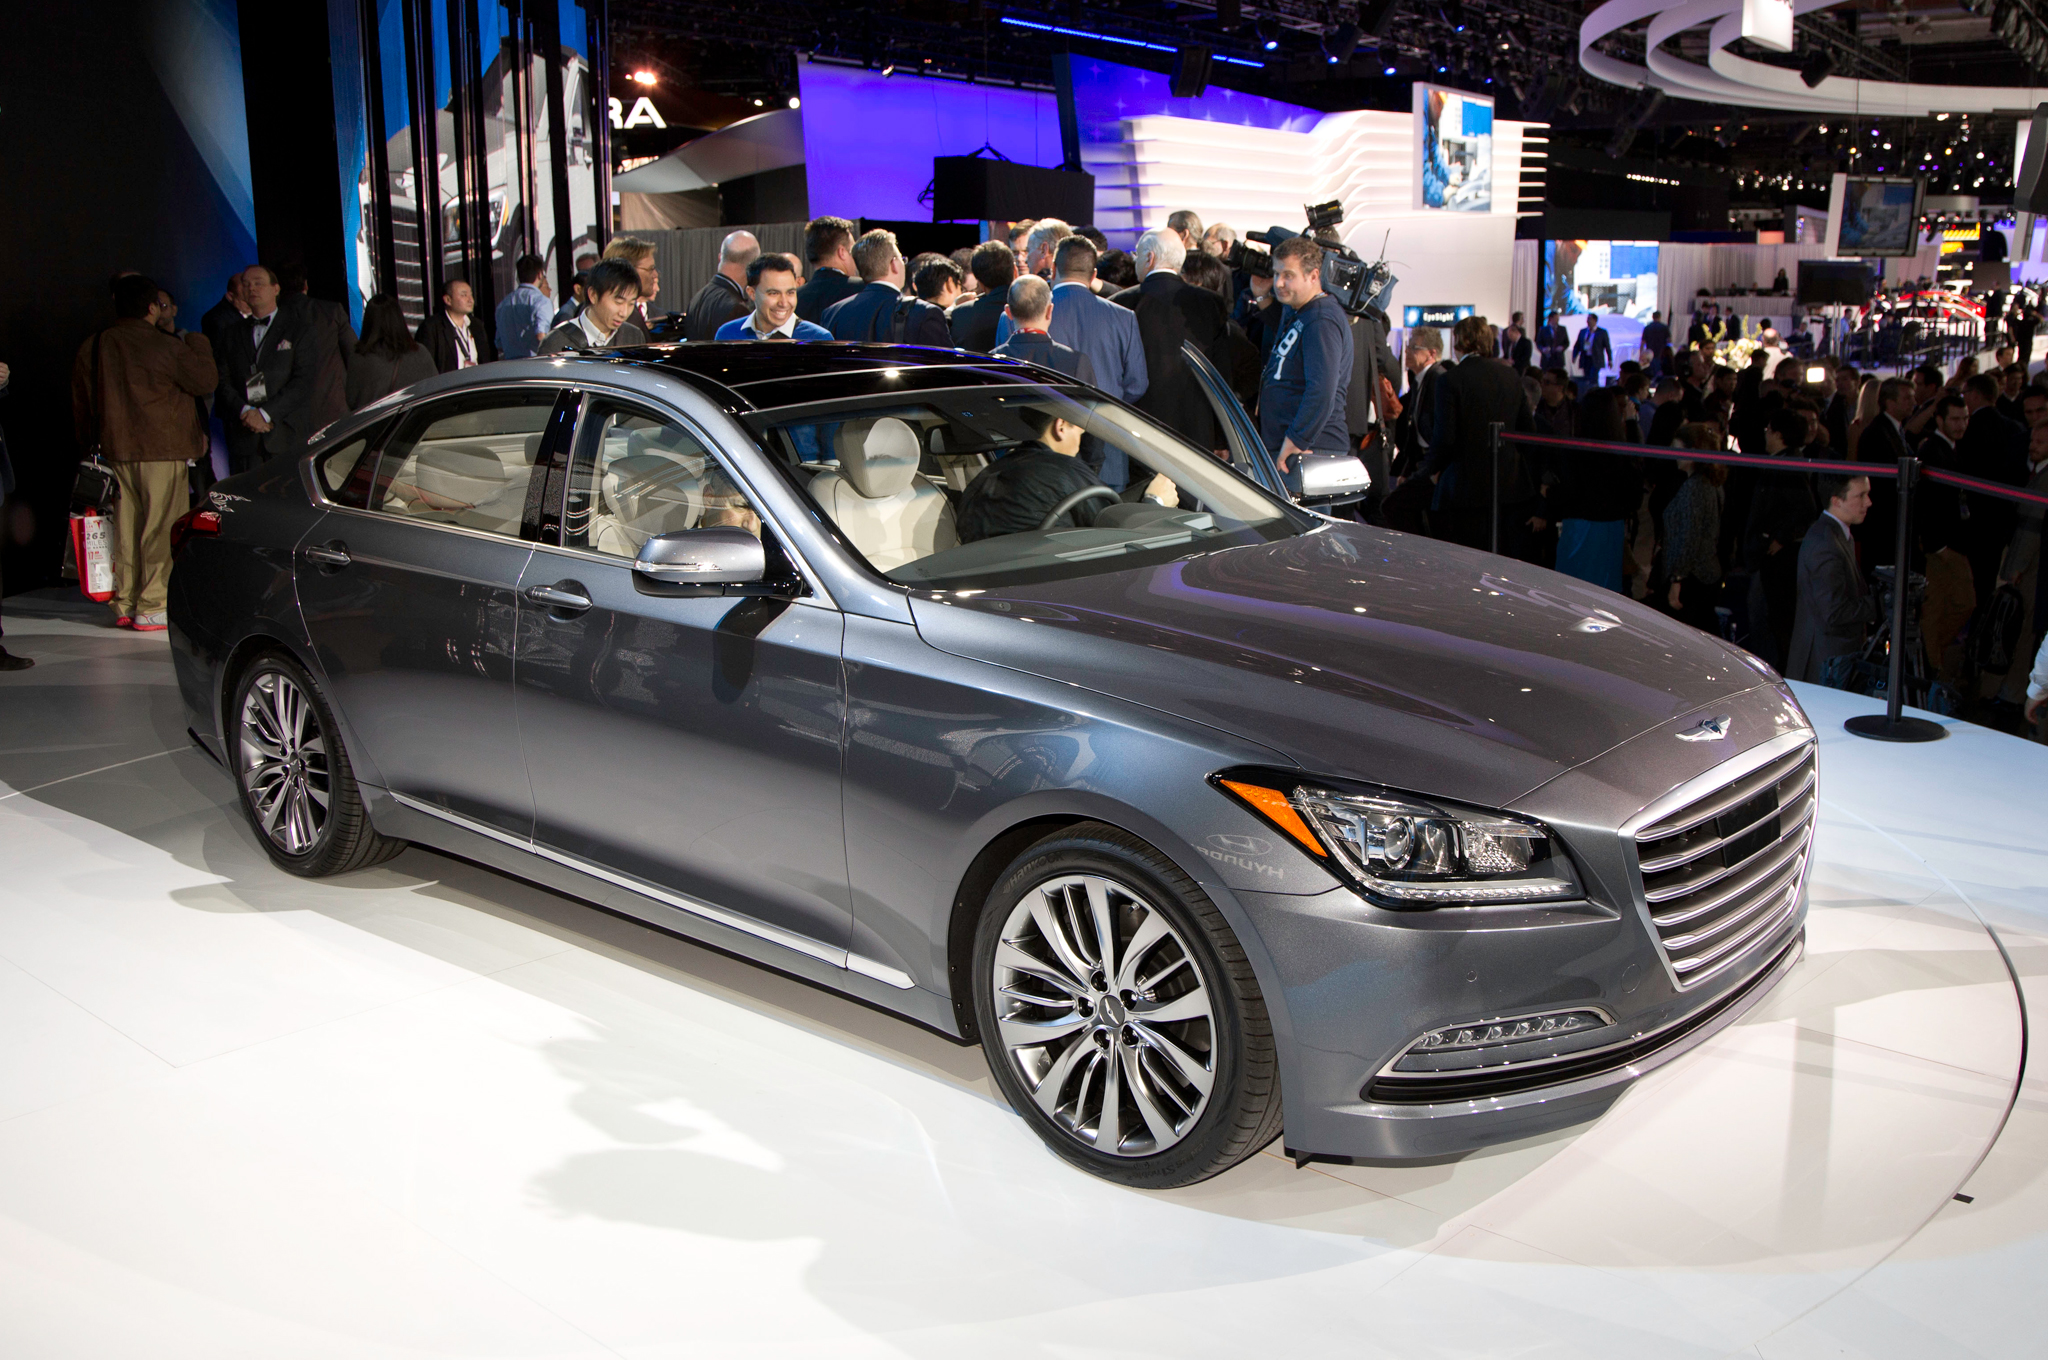 2015 Hyundai Genesis Sedan First Look